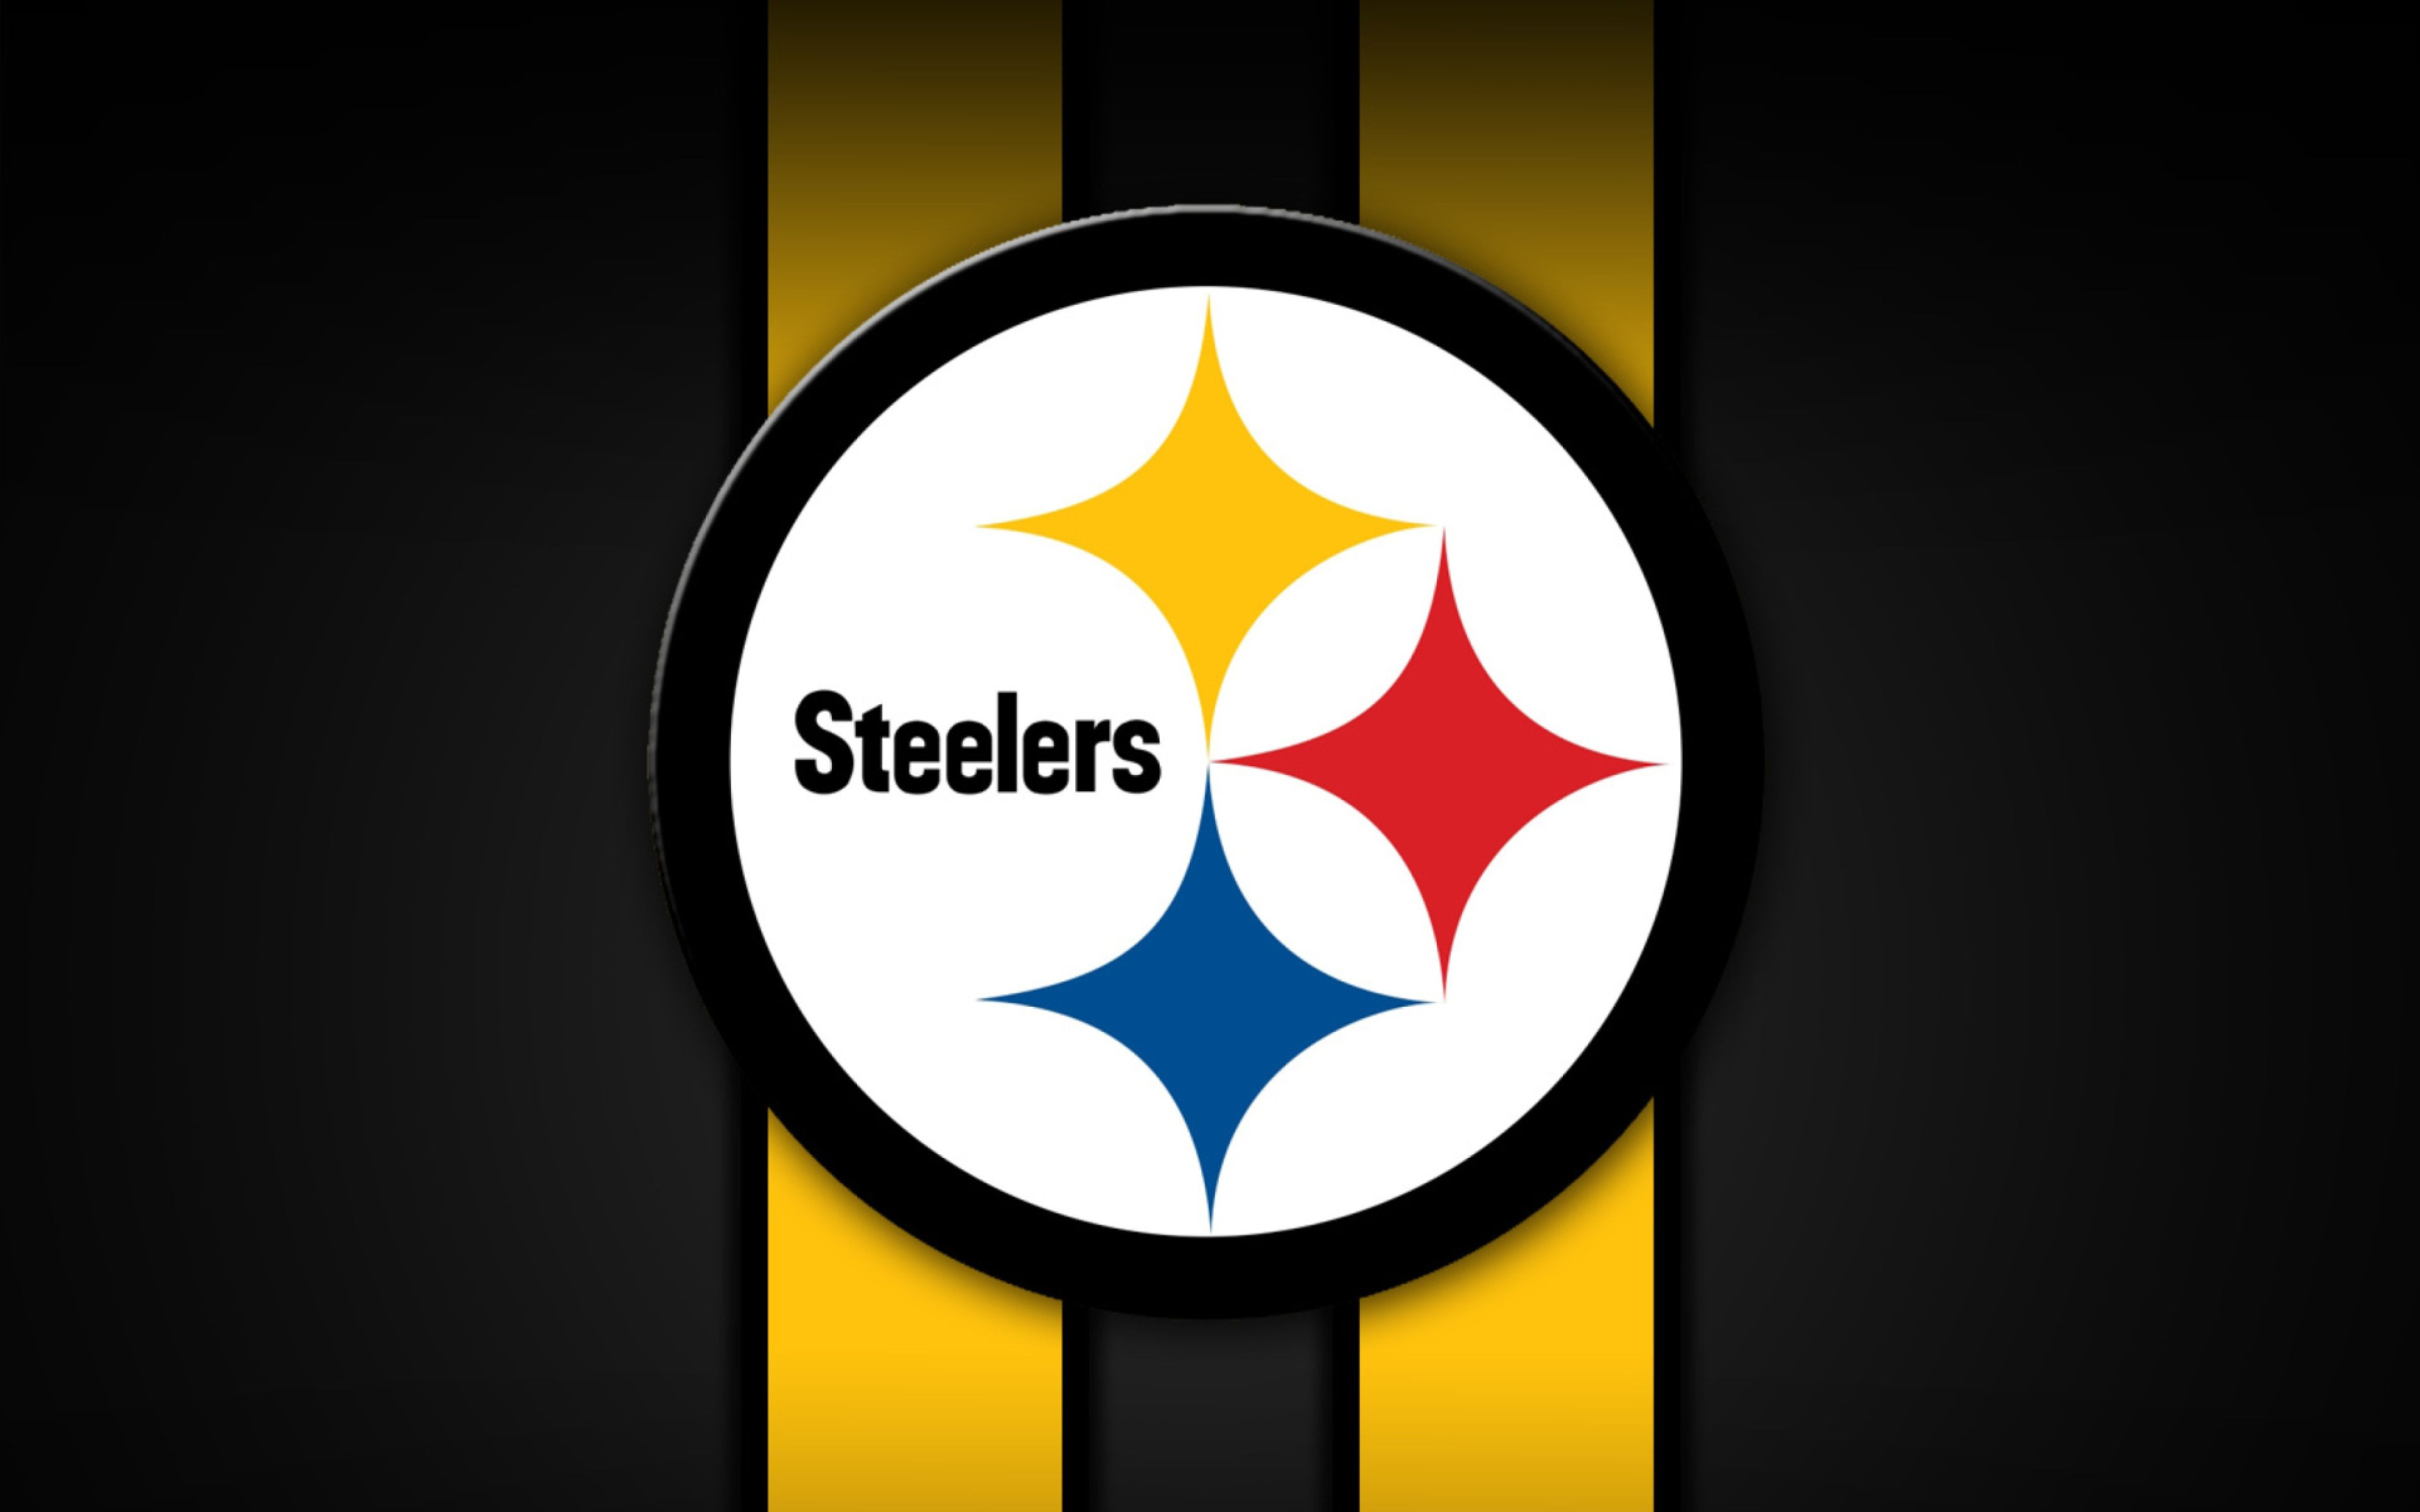 Steelers Logo Wallpapers.